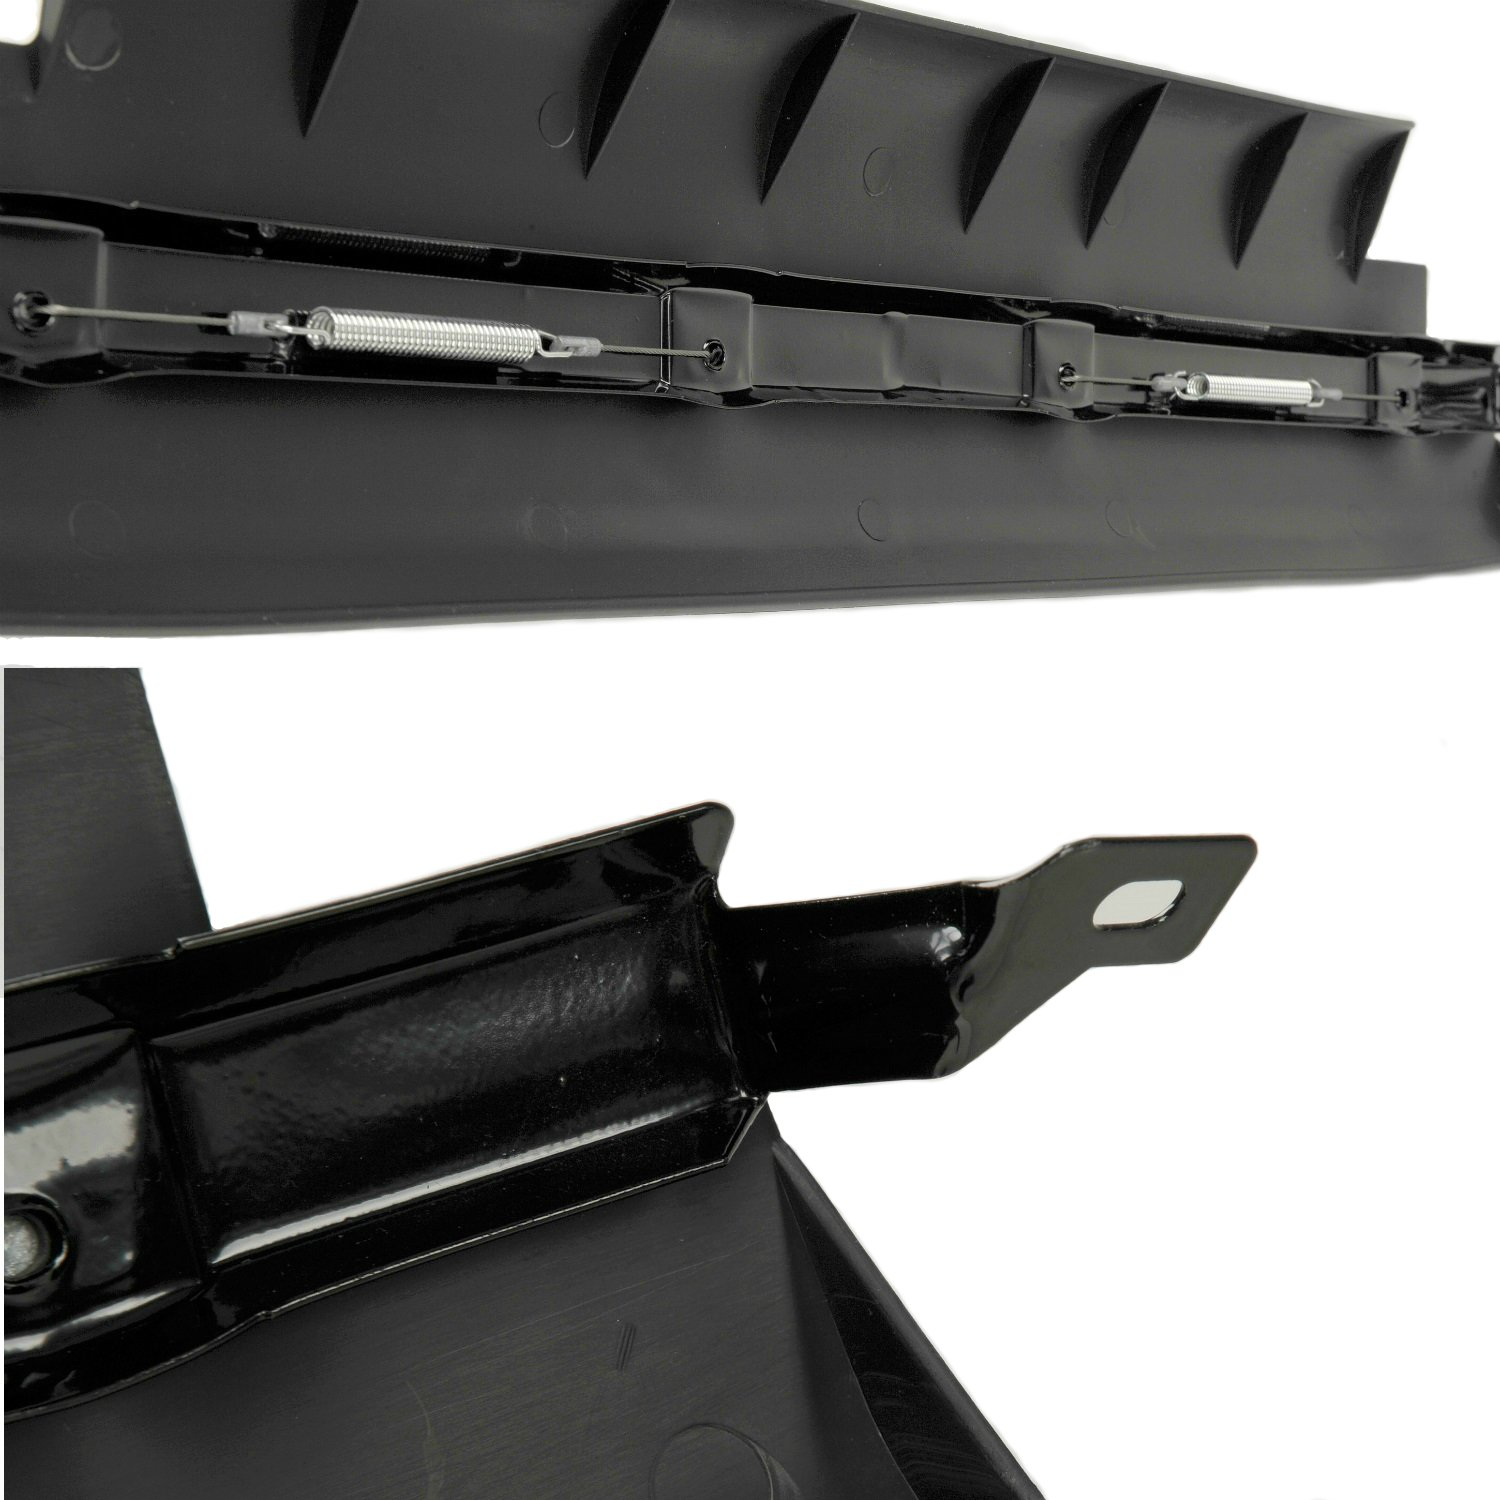 C5 Corvette Front Lower Spoiler Air Dam Complete Kit with Upgraded Mounting  Hardware Fits: All 97 through 04 Corvettes